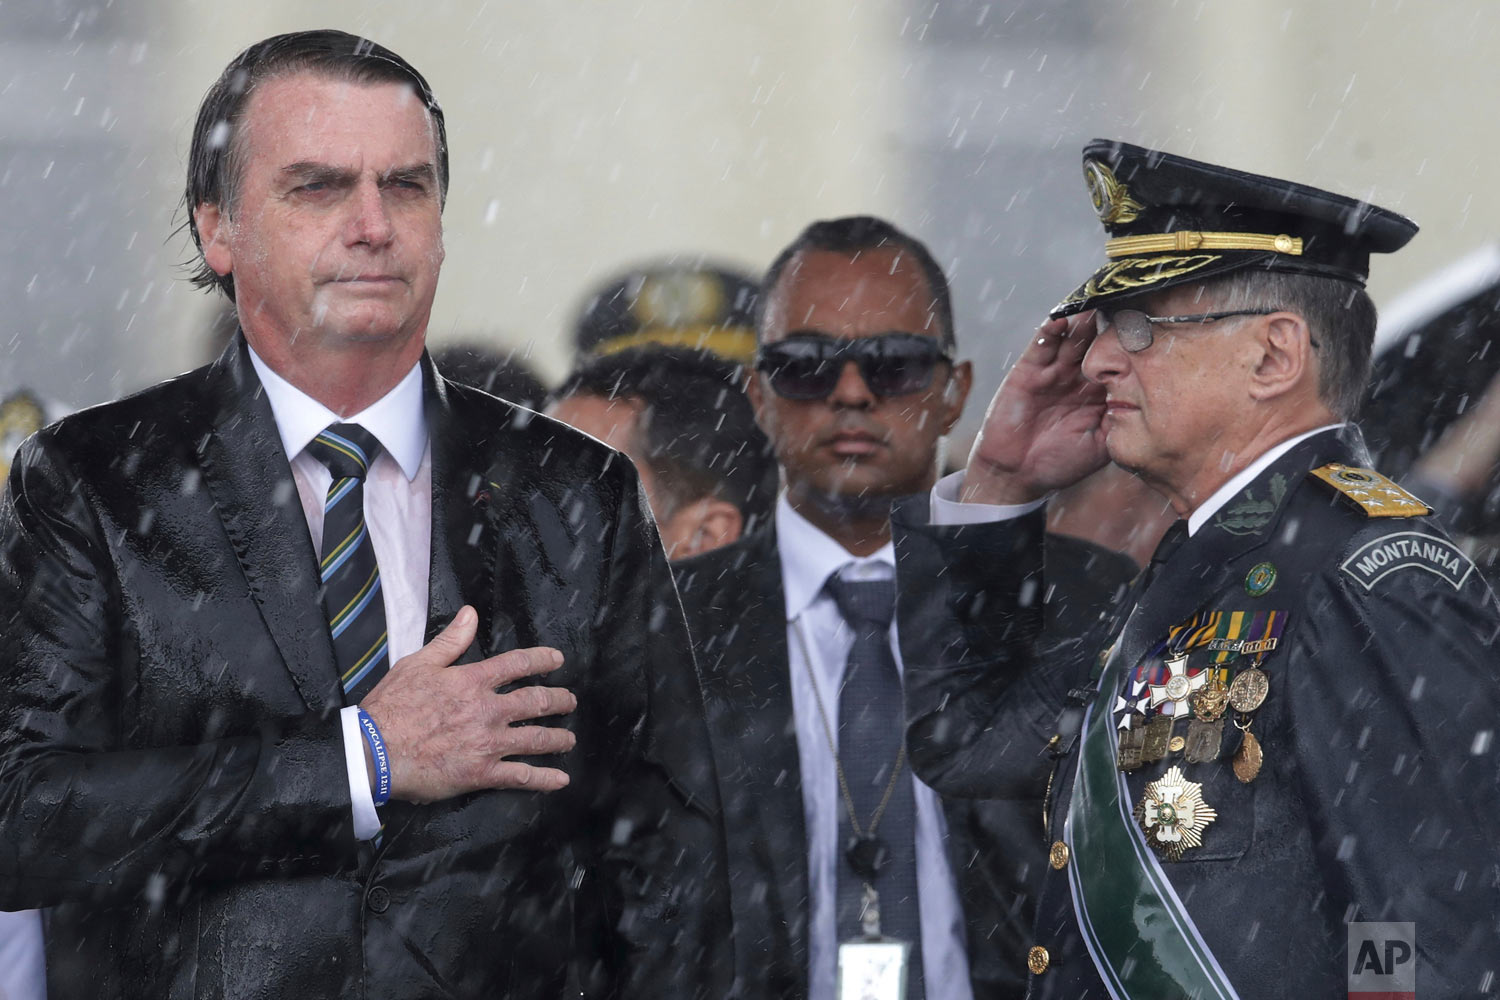 Brazil's President Jair Bolsonaro puts his hand over his heart as Army Commander Edson Leal Pujol salutes during the playing of the national anthem during a ceremony marking Army Day, in Brasilia, Brazil, April 17, 2019. (AP Photo/Eraldo Peres)